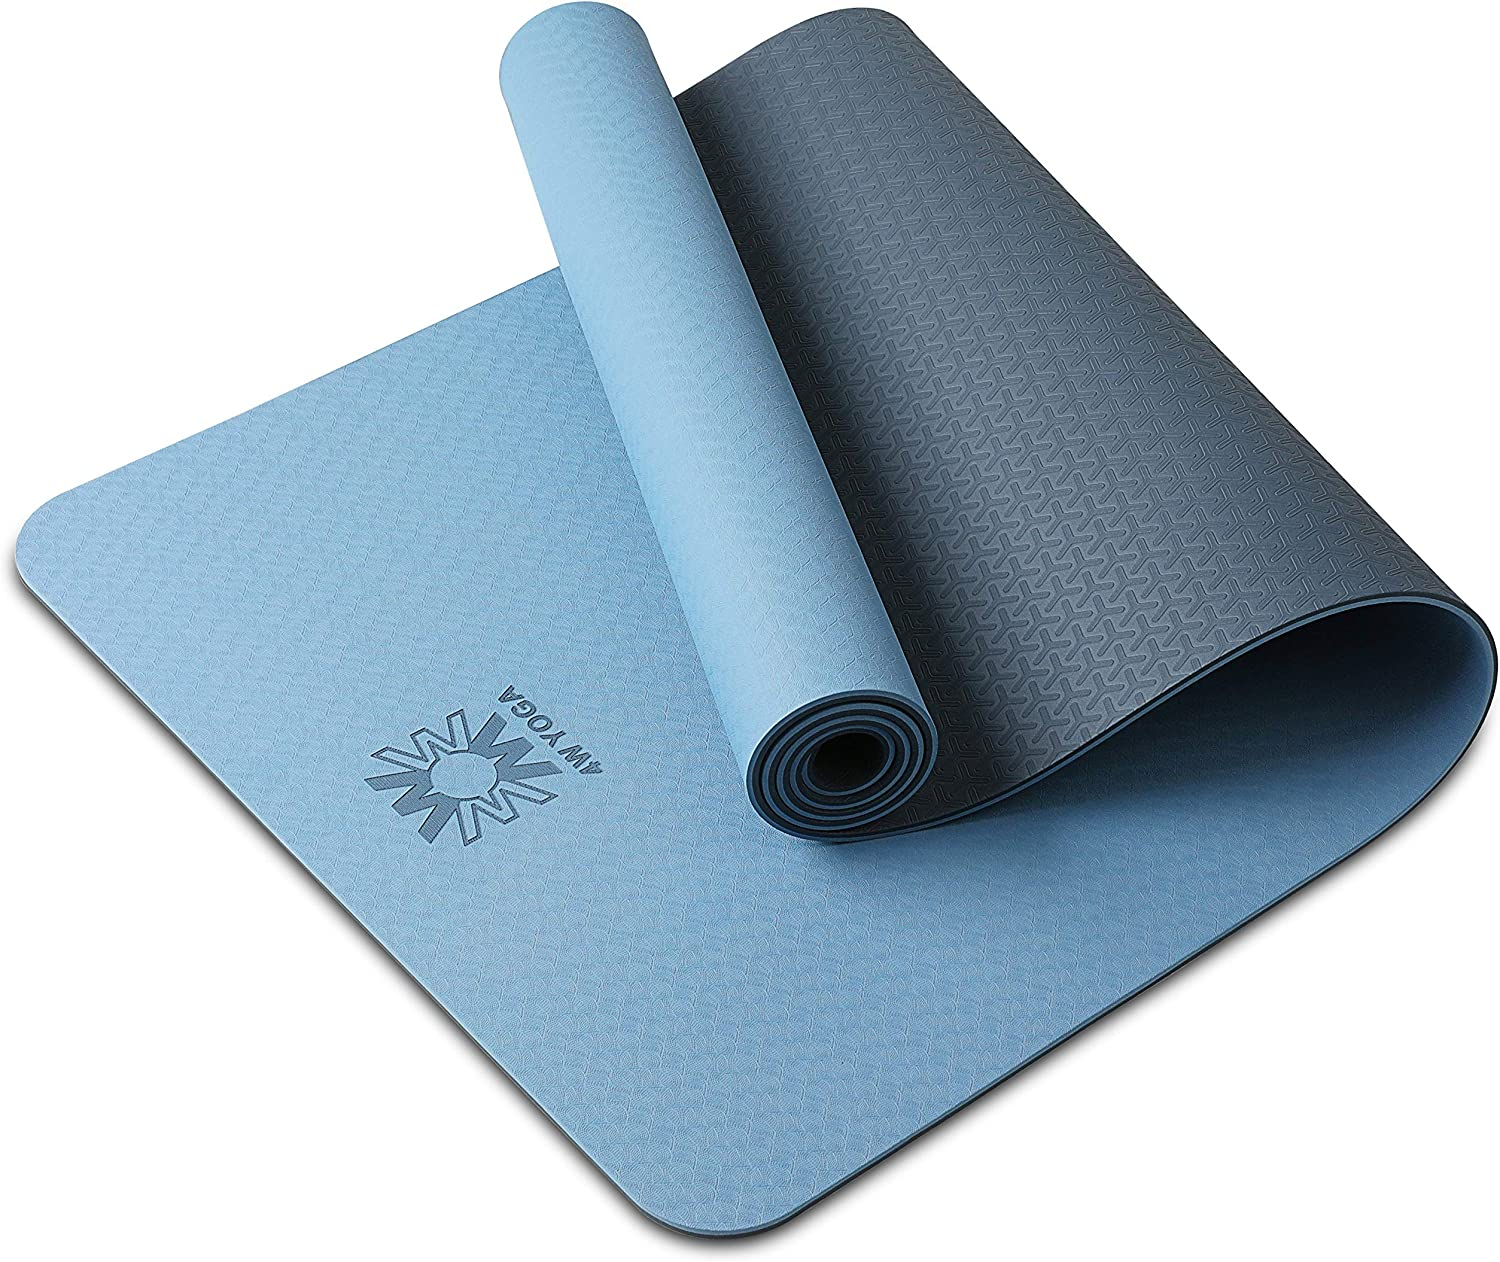 """WWWW 4W Yoga Mat Eco Friendly TPE Non Slip Yoga Mats by SGS Certified with Carrying Strap,72""""x24"""" Extra Thick 1/4"""" for Yoga Pilates Fitness Exercise Mat"""